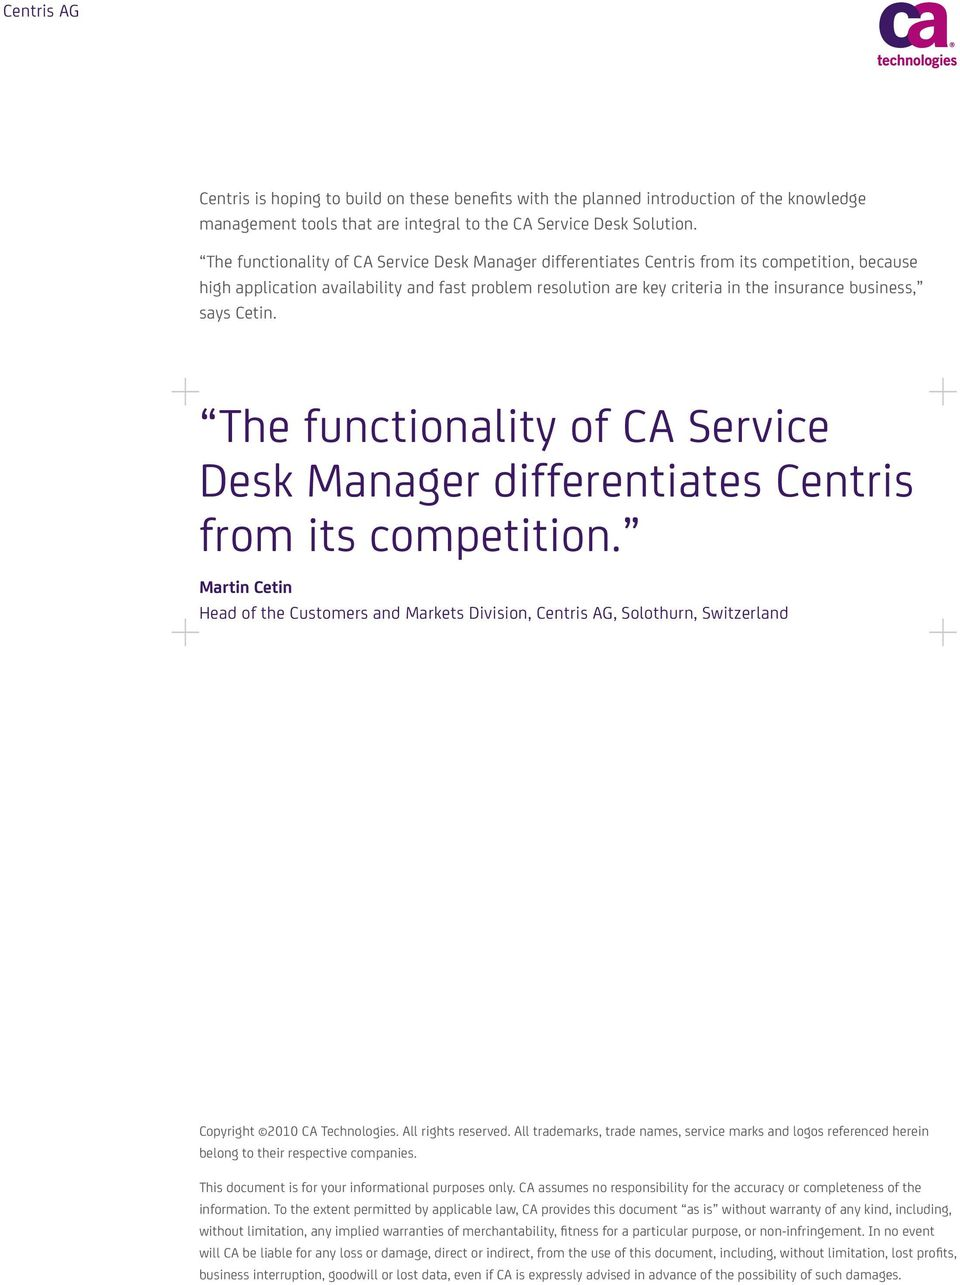 says Cetin. The functionality of CA Service Desk Manager differentiates Centris from its competition.